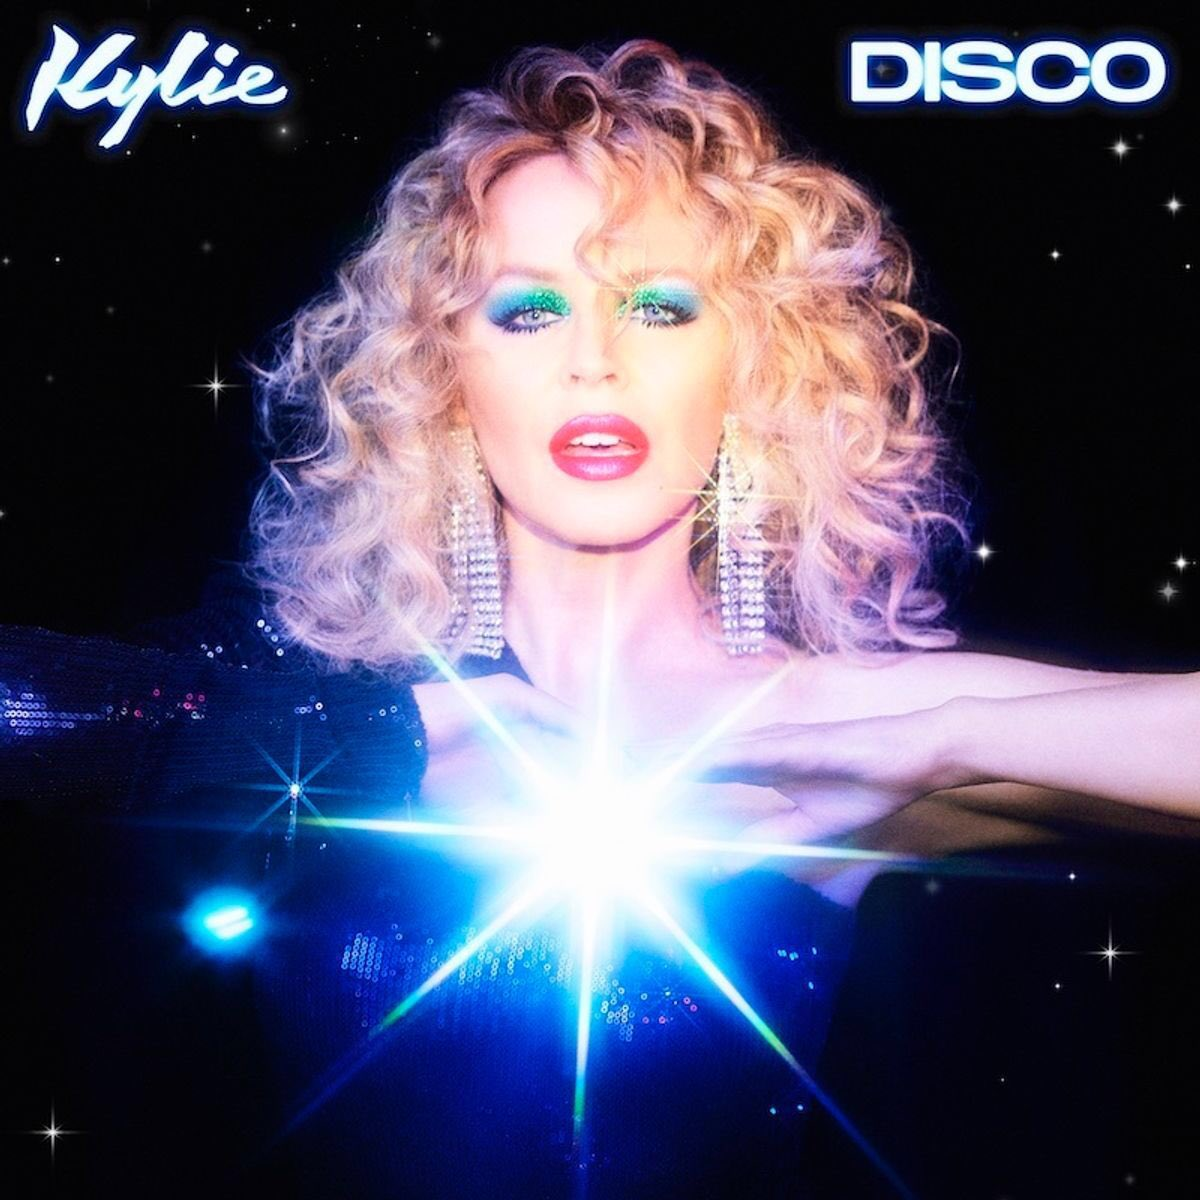 Thank you @kylieminogue for this 🔥🔥🔥 album!! The world needed this! #DISCO